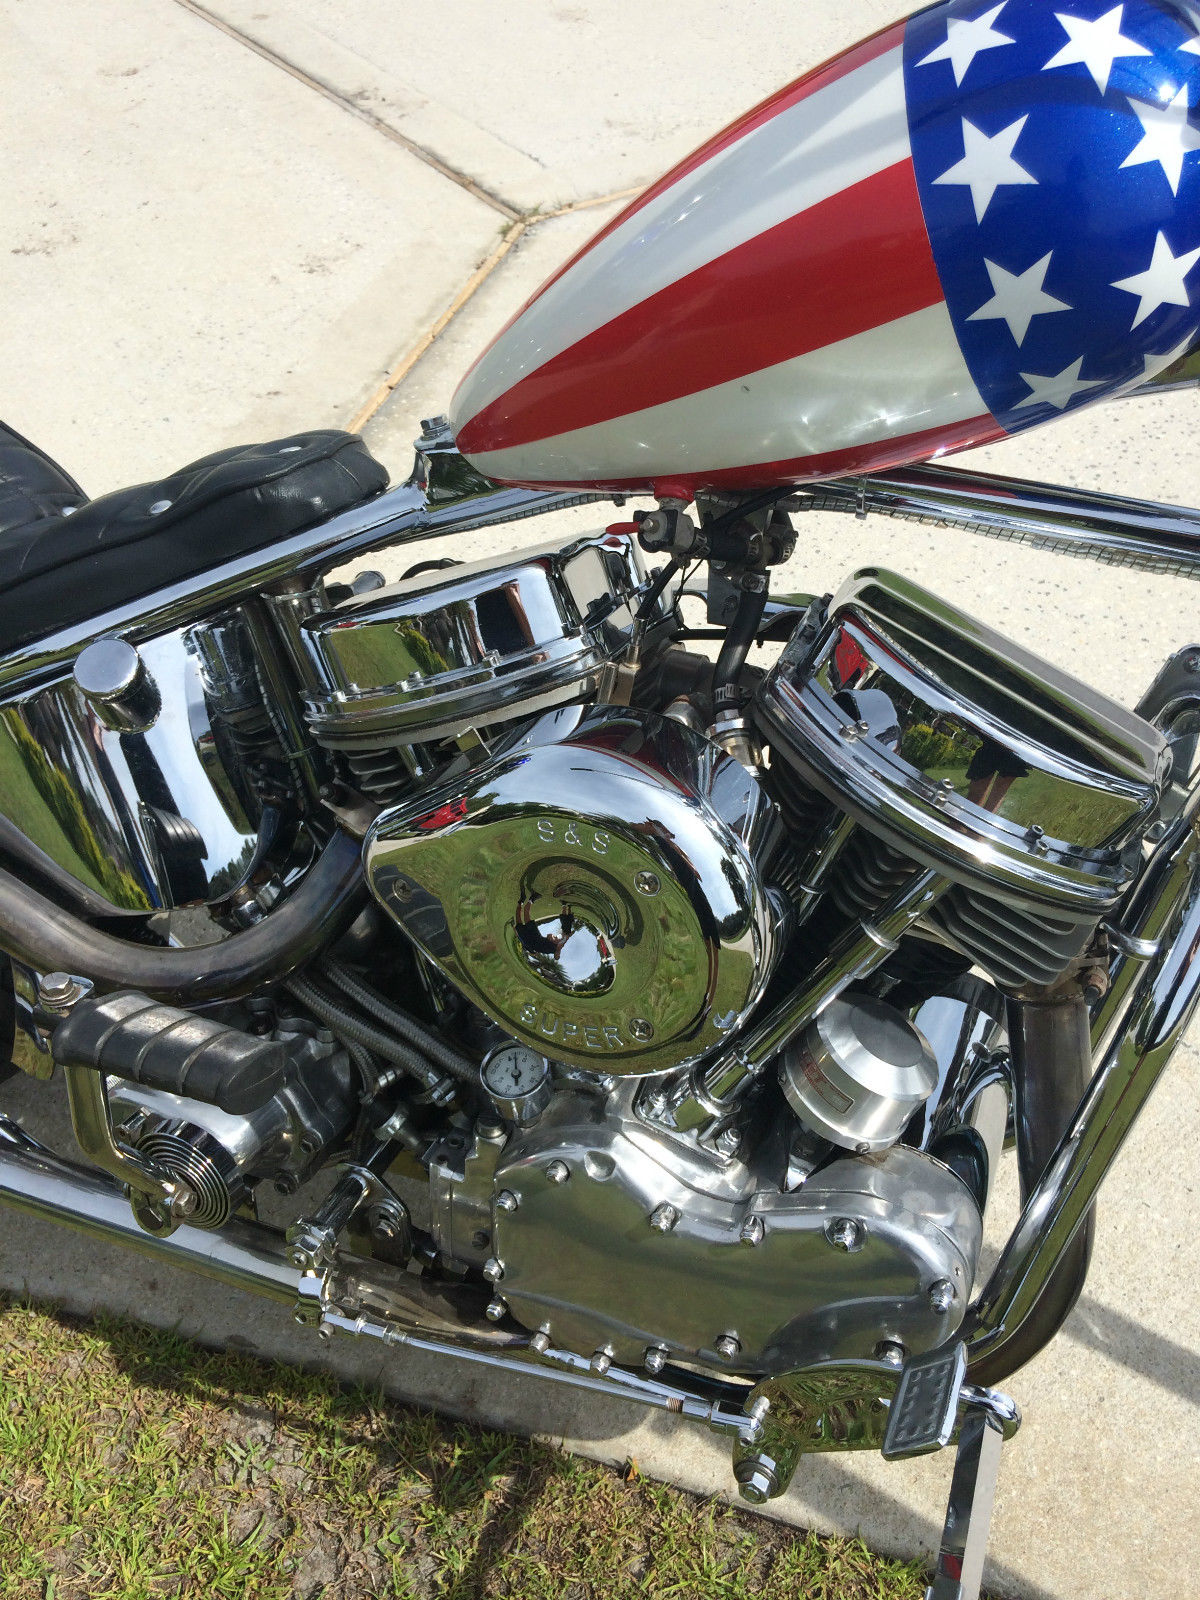 Harley-Davison Easy Rider Replica - 1956 - Engine, Panhead, Heads and Air Cleaner.